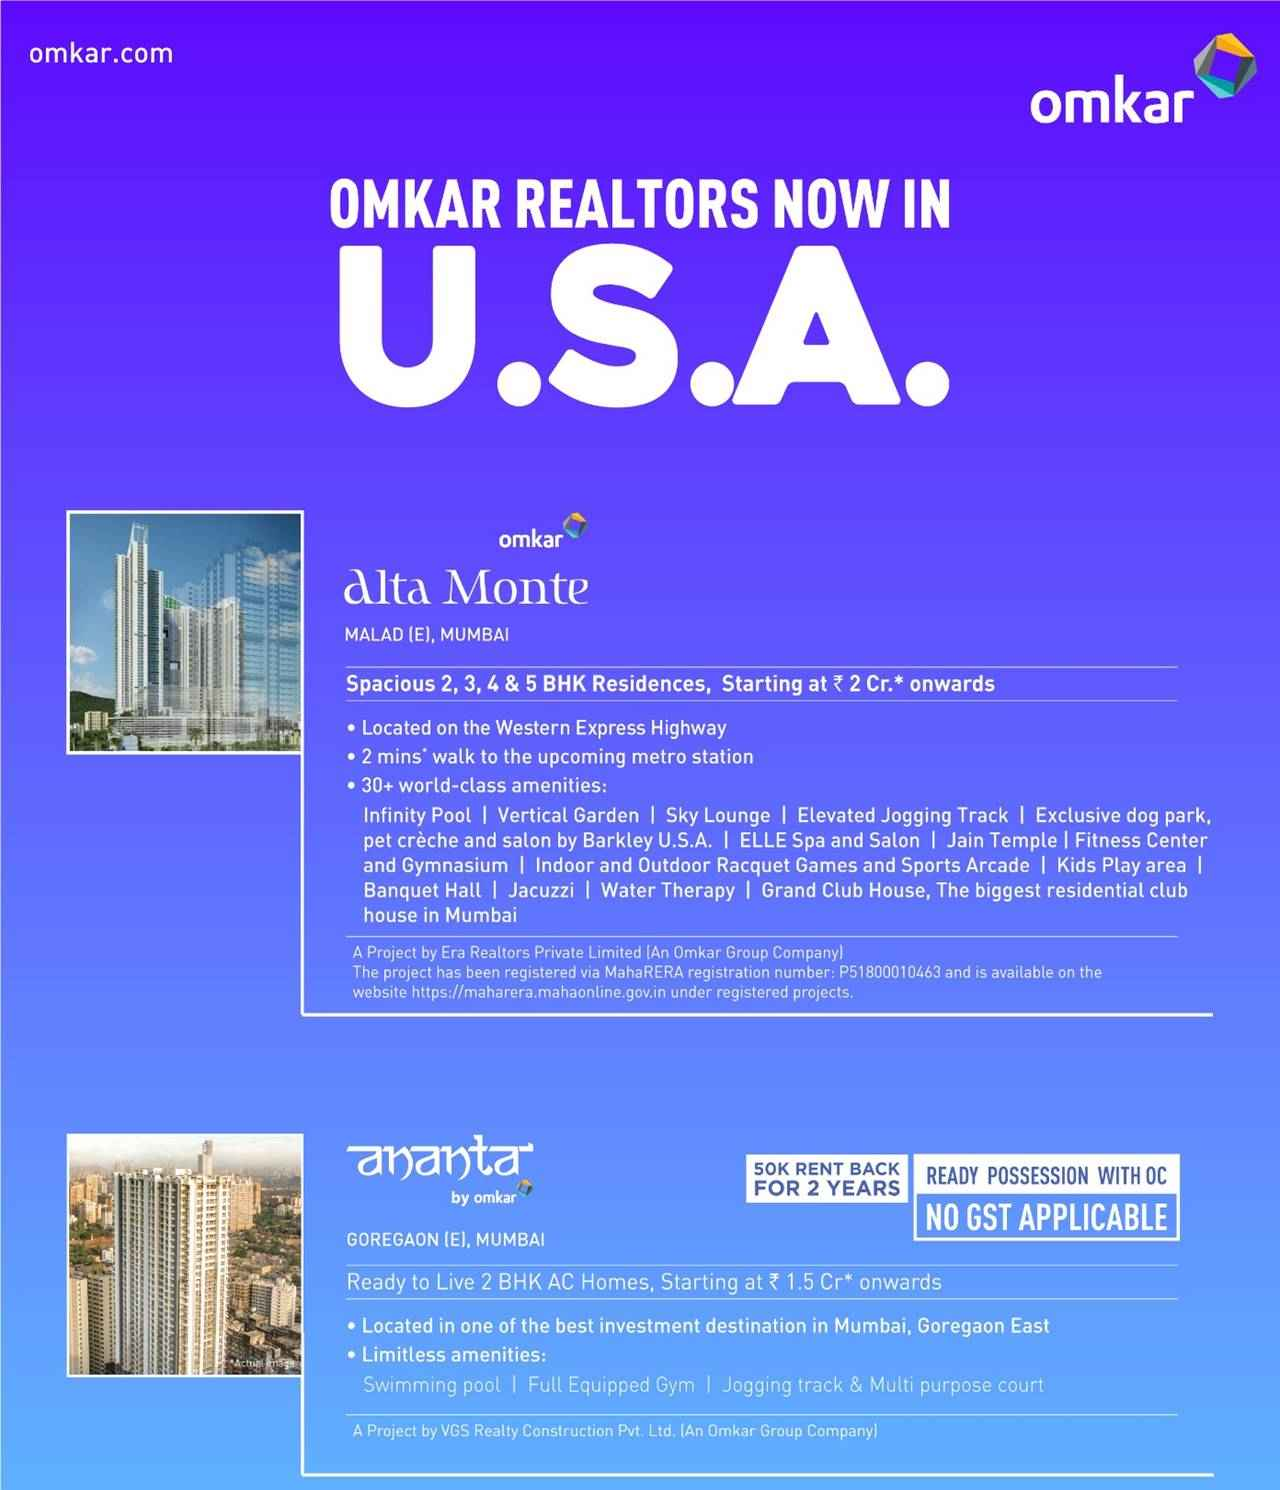 Special NRI Offers for Mumbai Properties by Omkar